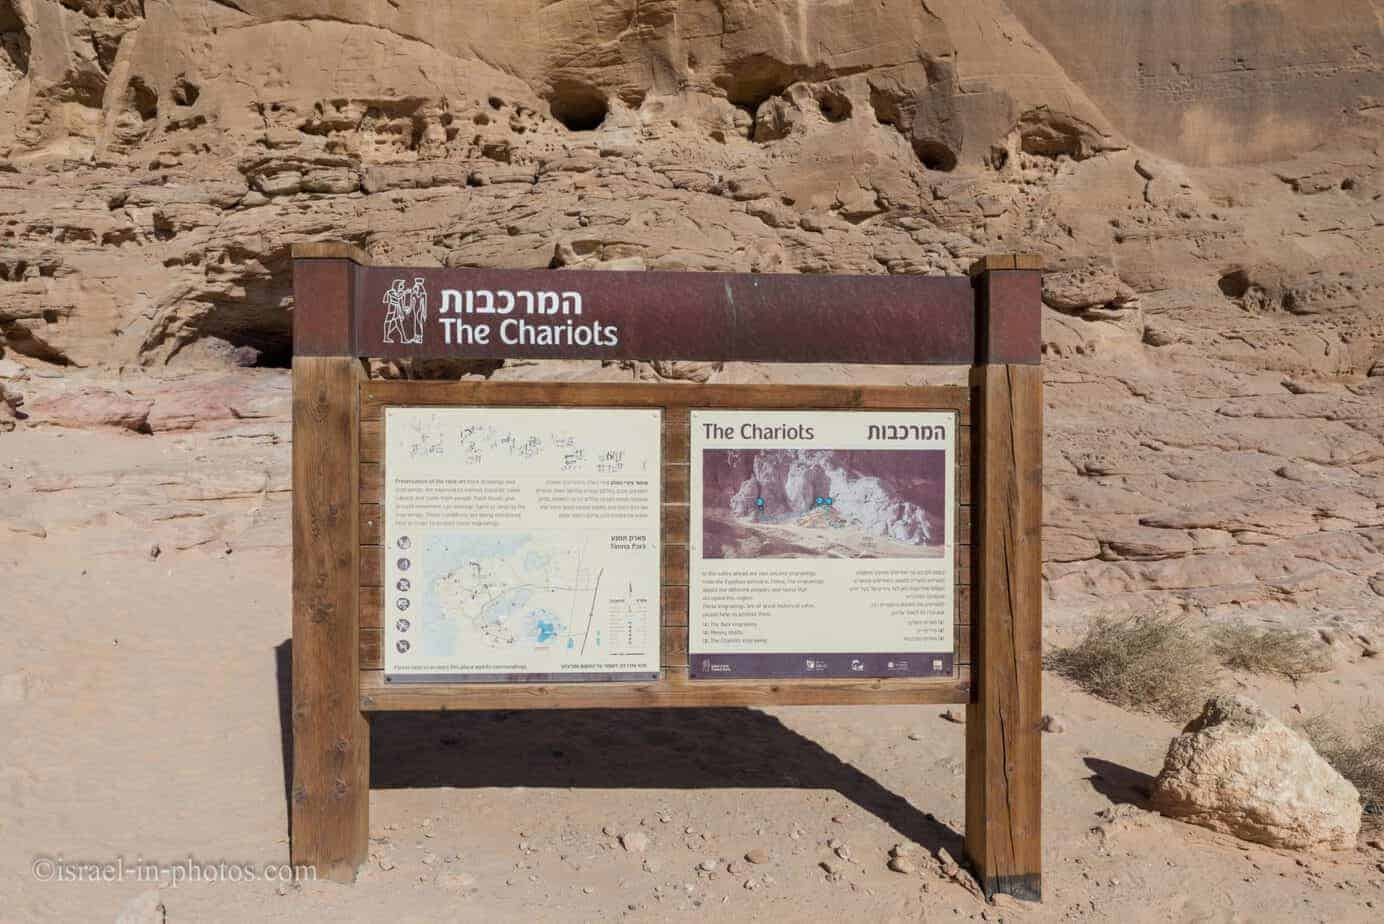 At Timna Park, near Eilat, Israel